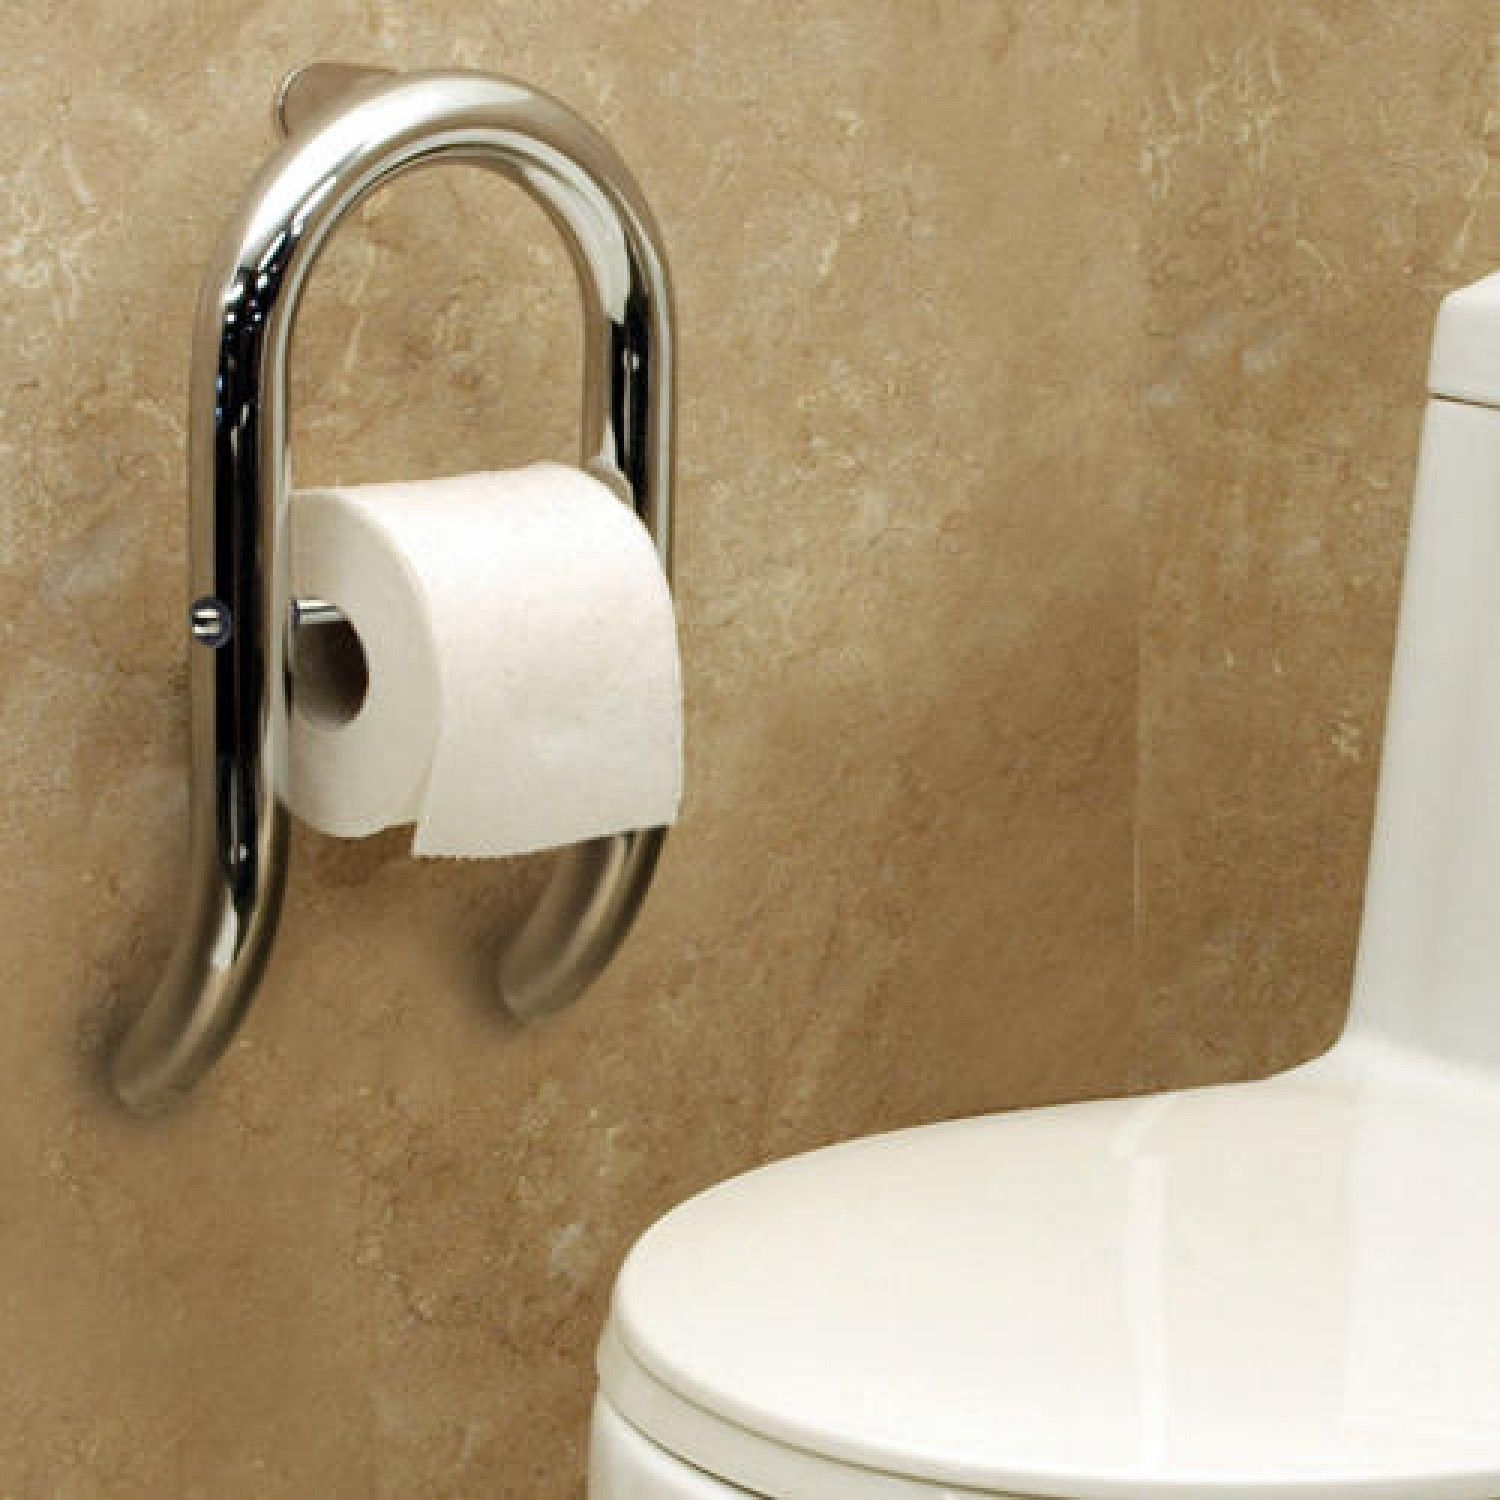 Invisia Toilet Roll Holder with Integrated Grab Bar   Grab bars ...